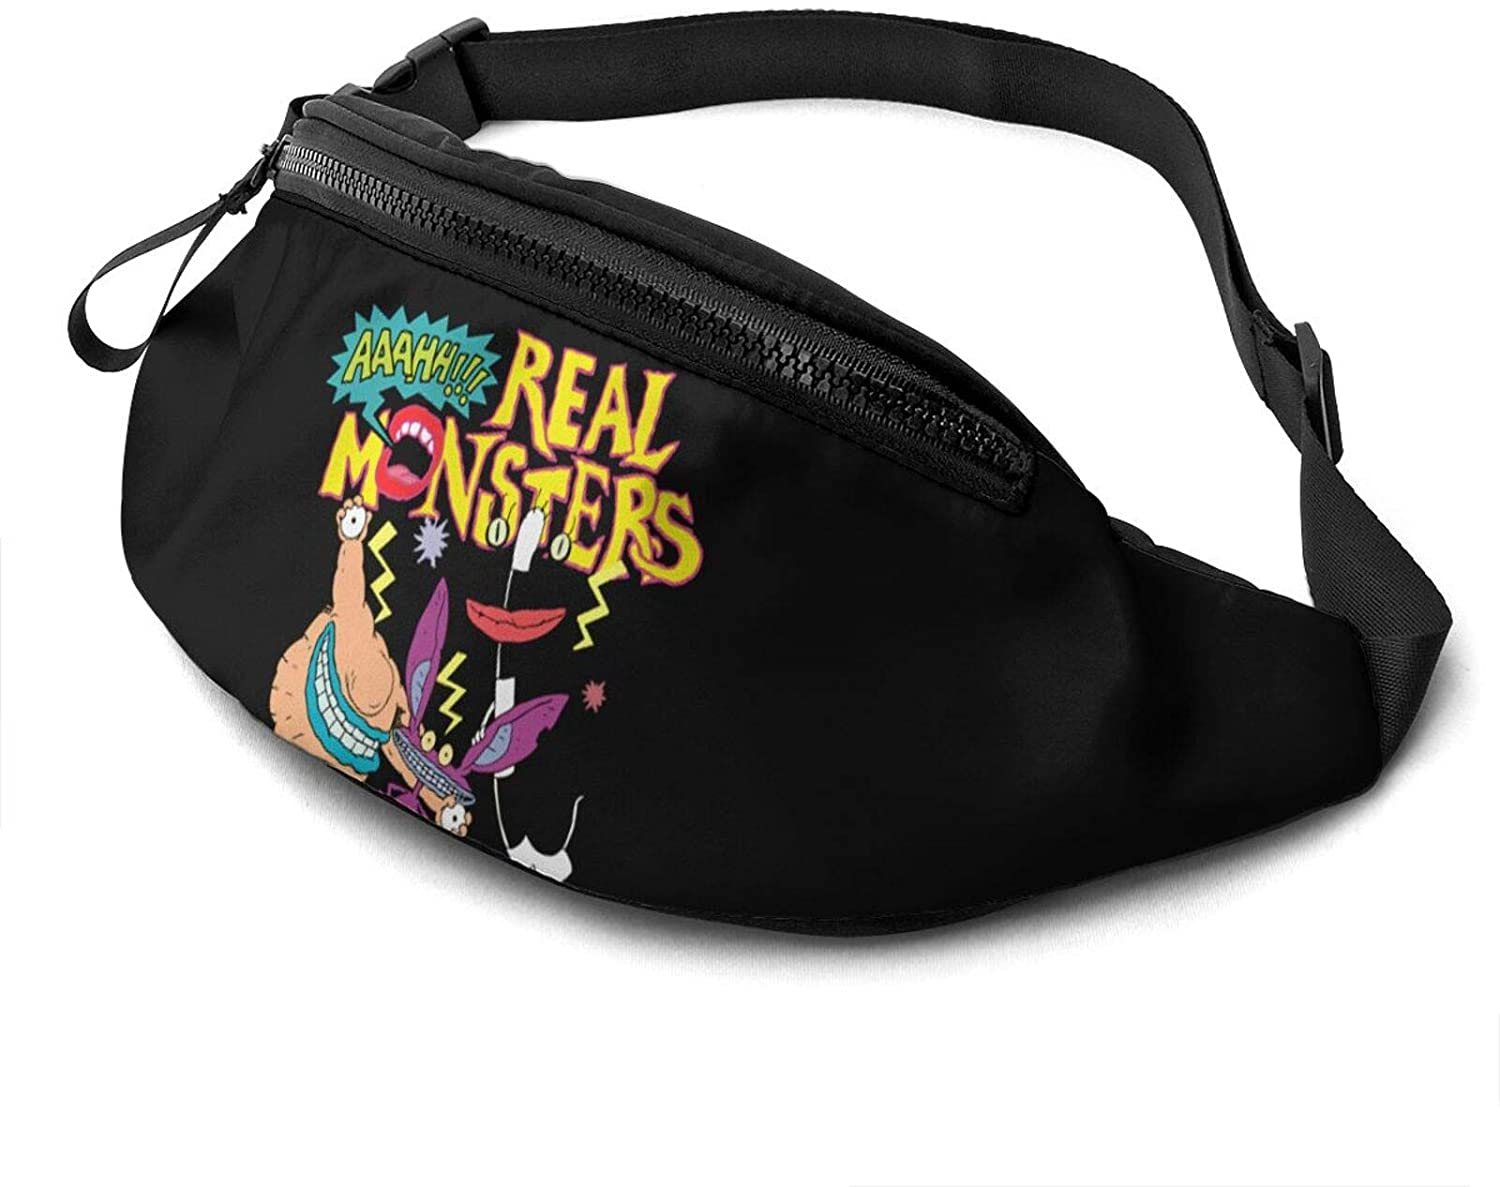 Aaahh!!! Real Monsters Fanny Pack Running Waist Pack Bag Casual Super Lightweight Fanny Pack for Unisex